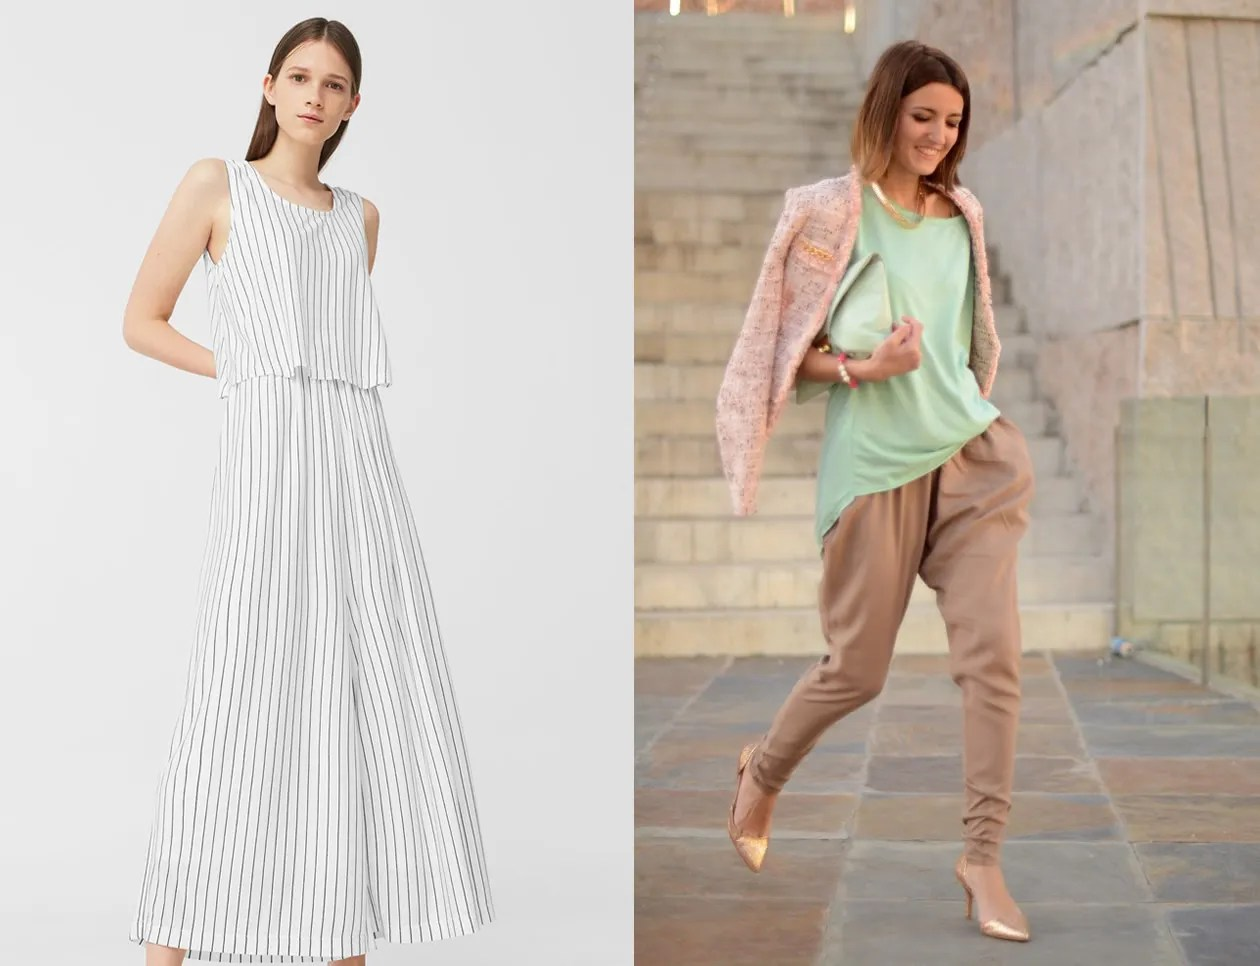 10 Best Wedding Guest Trousers Outfit Ideas For Women Fmag Com